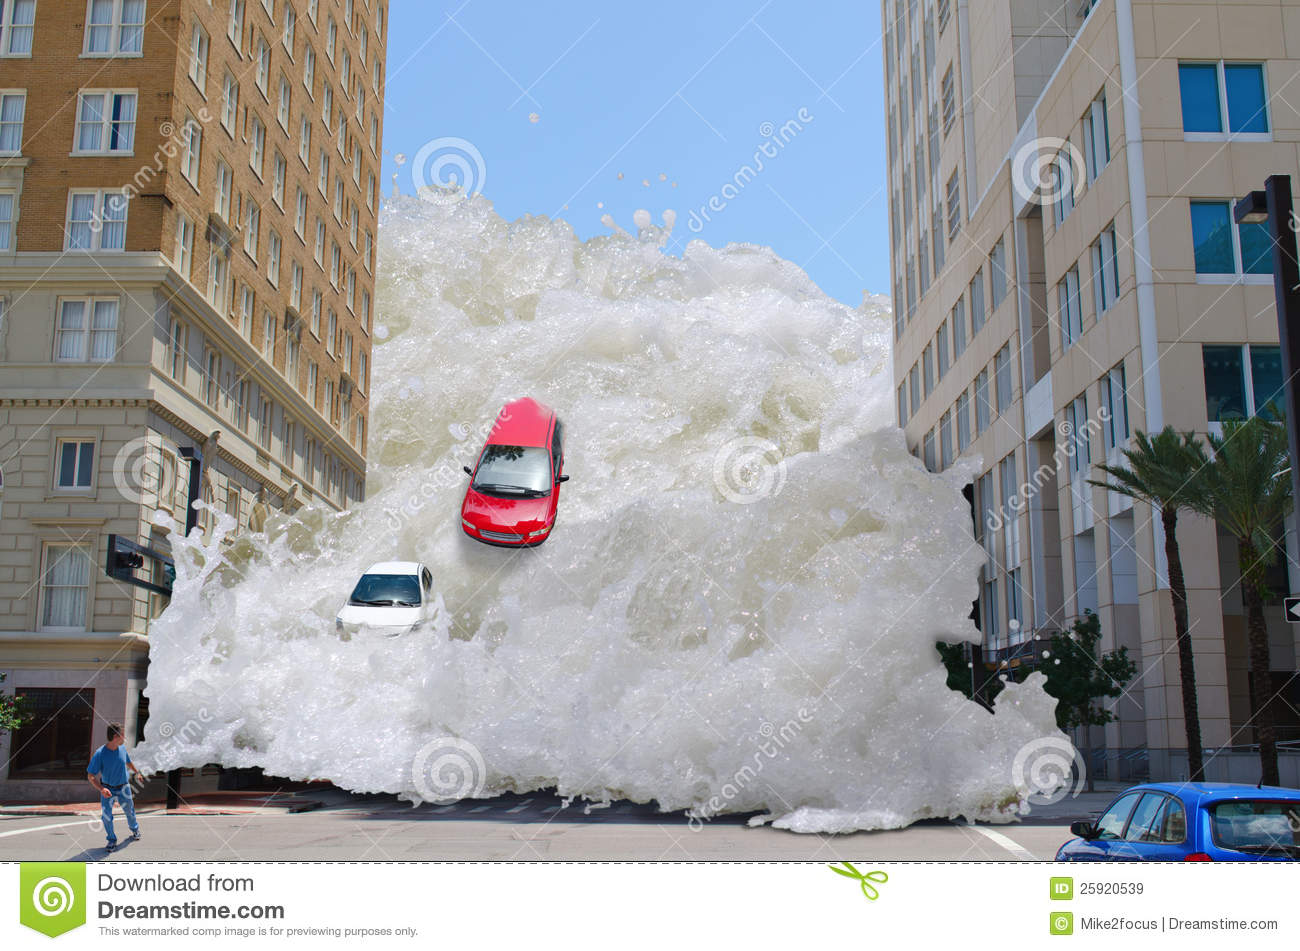 Tsunami tidal wave washing through a city street pushing cars out of